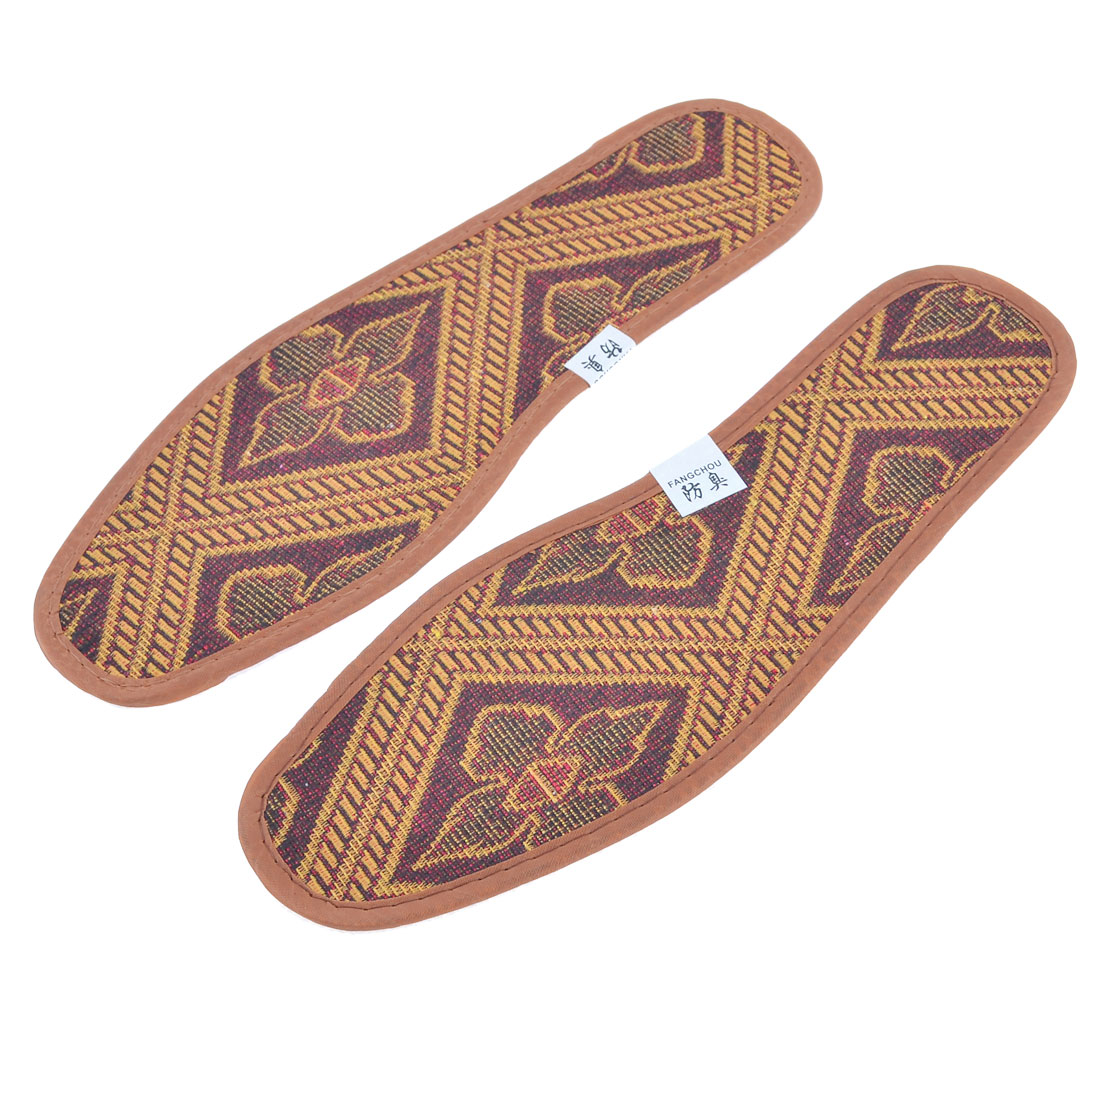 Pair Polyester Floral Pattern Insoles Shoe Pads Yellow Brown US Size 9.5 for Man